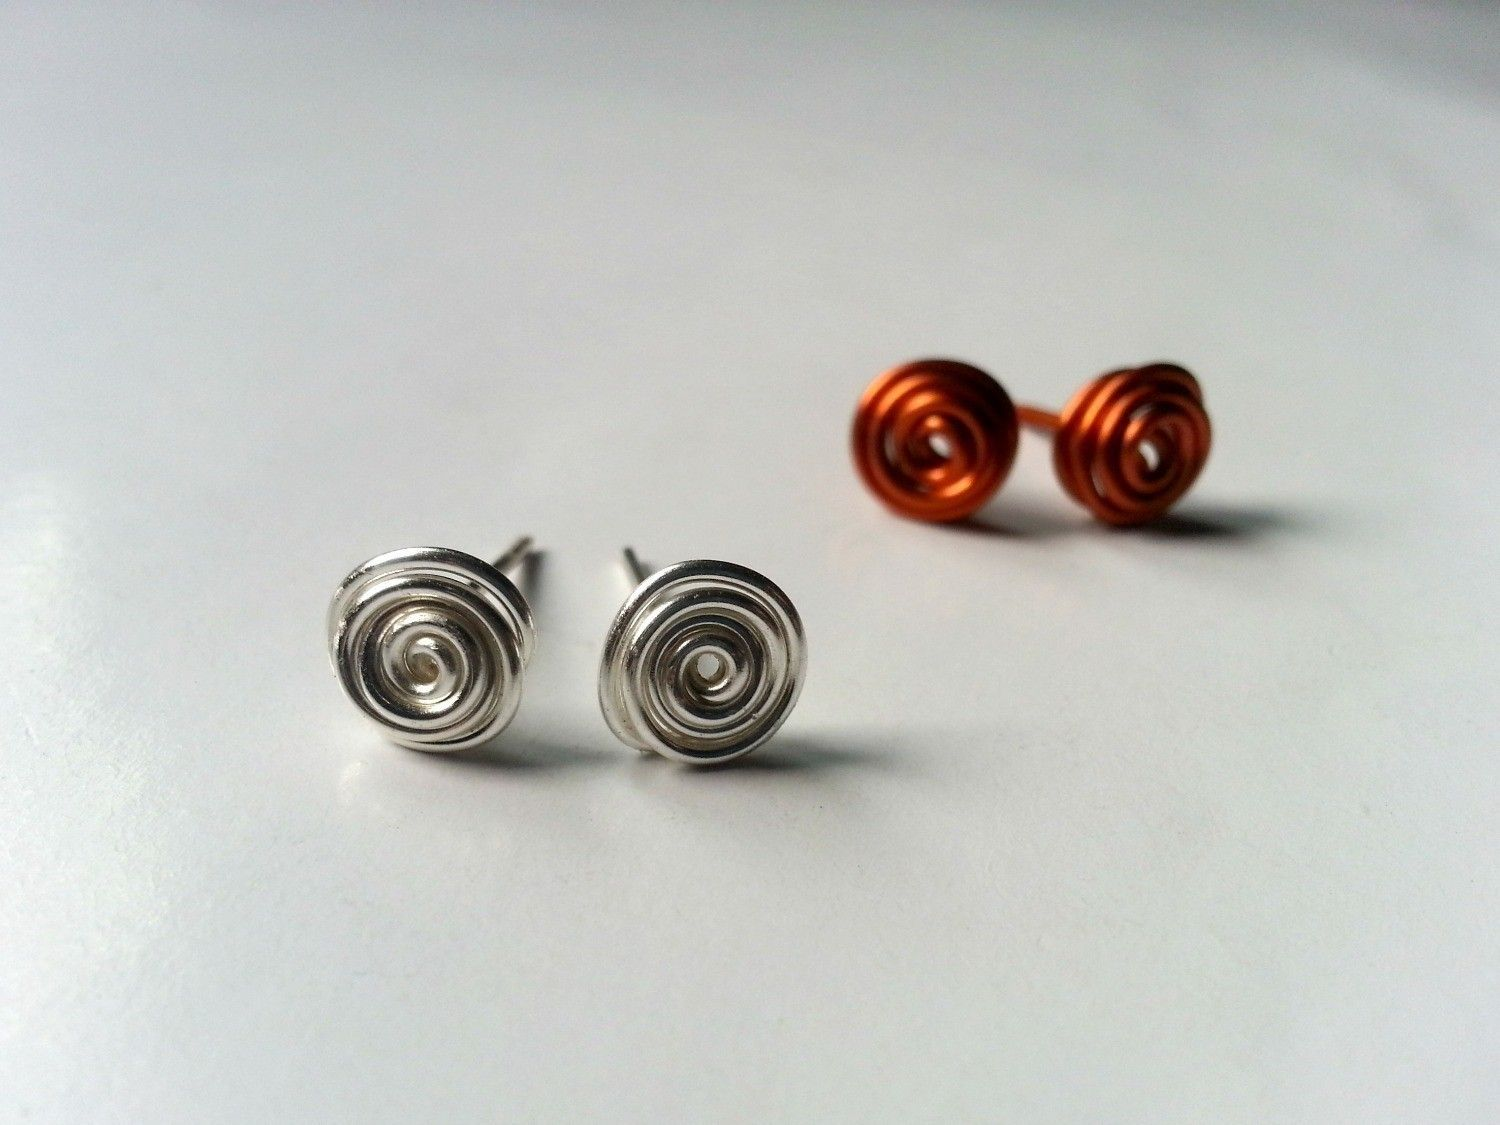 Swirly Stud Earrings | Wire earrings, Tutorials and Free